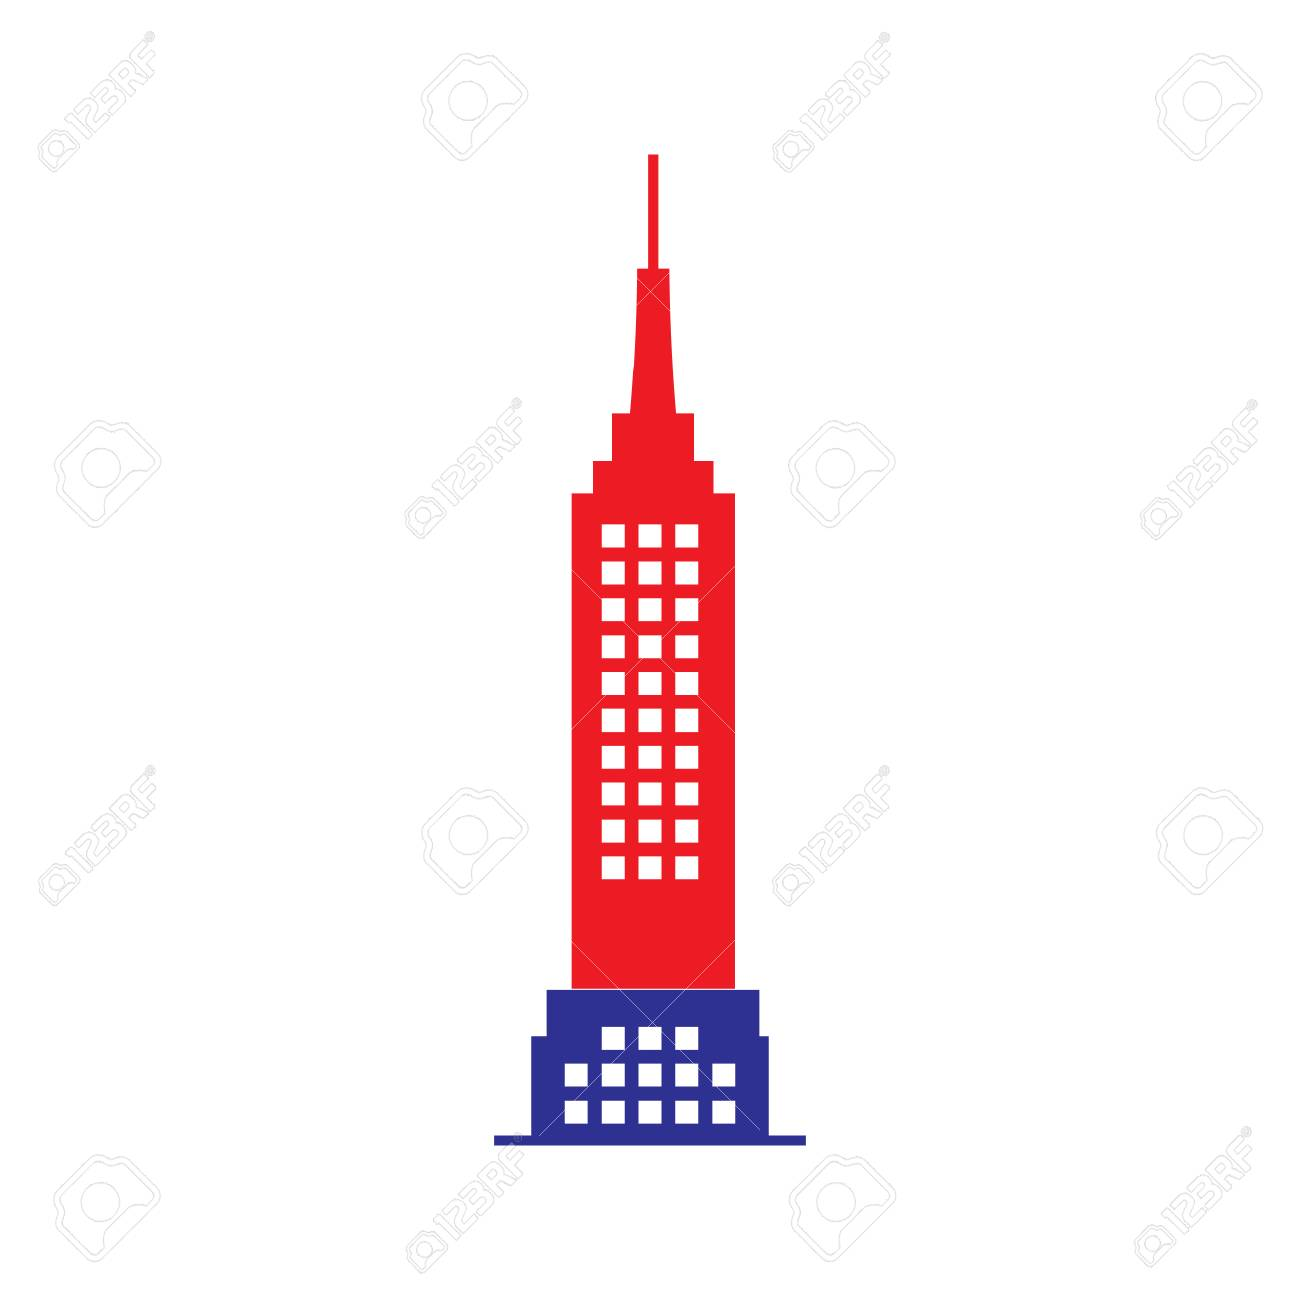 empire state building - 106672140